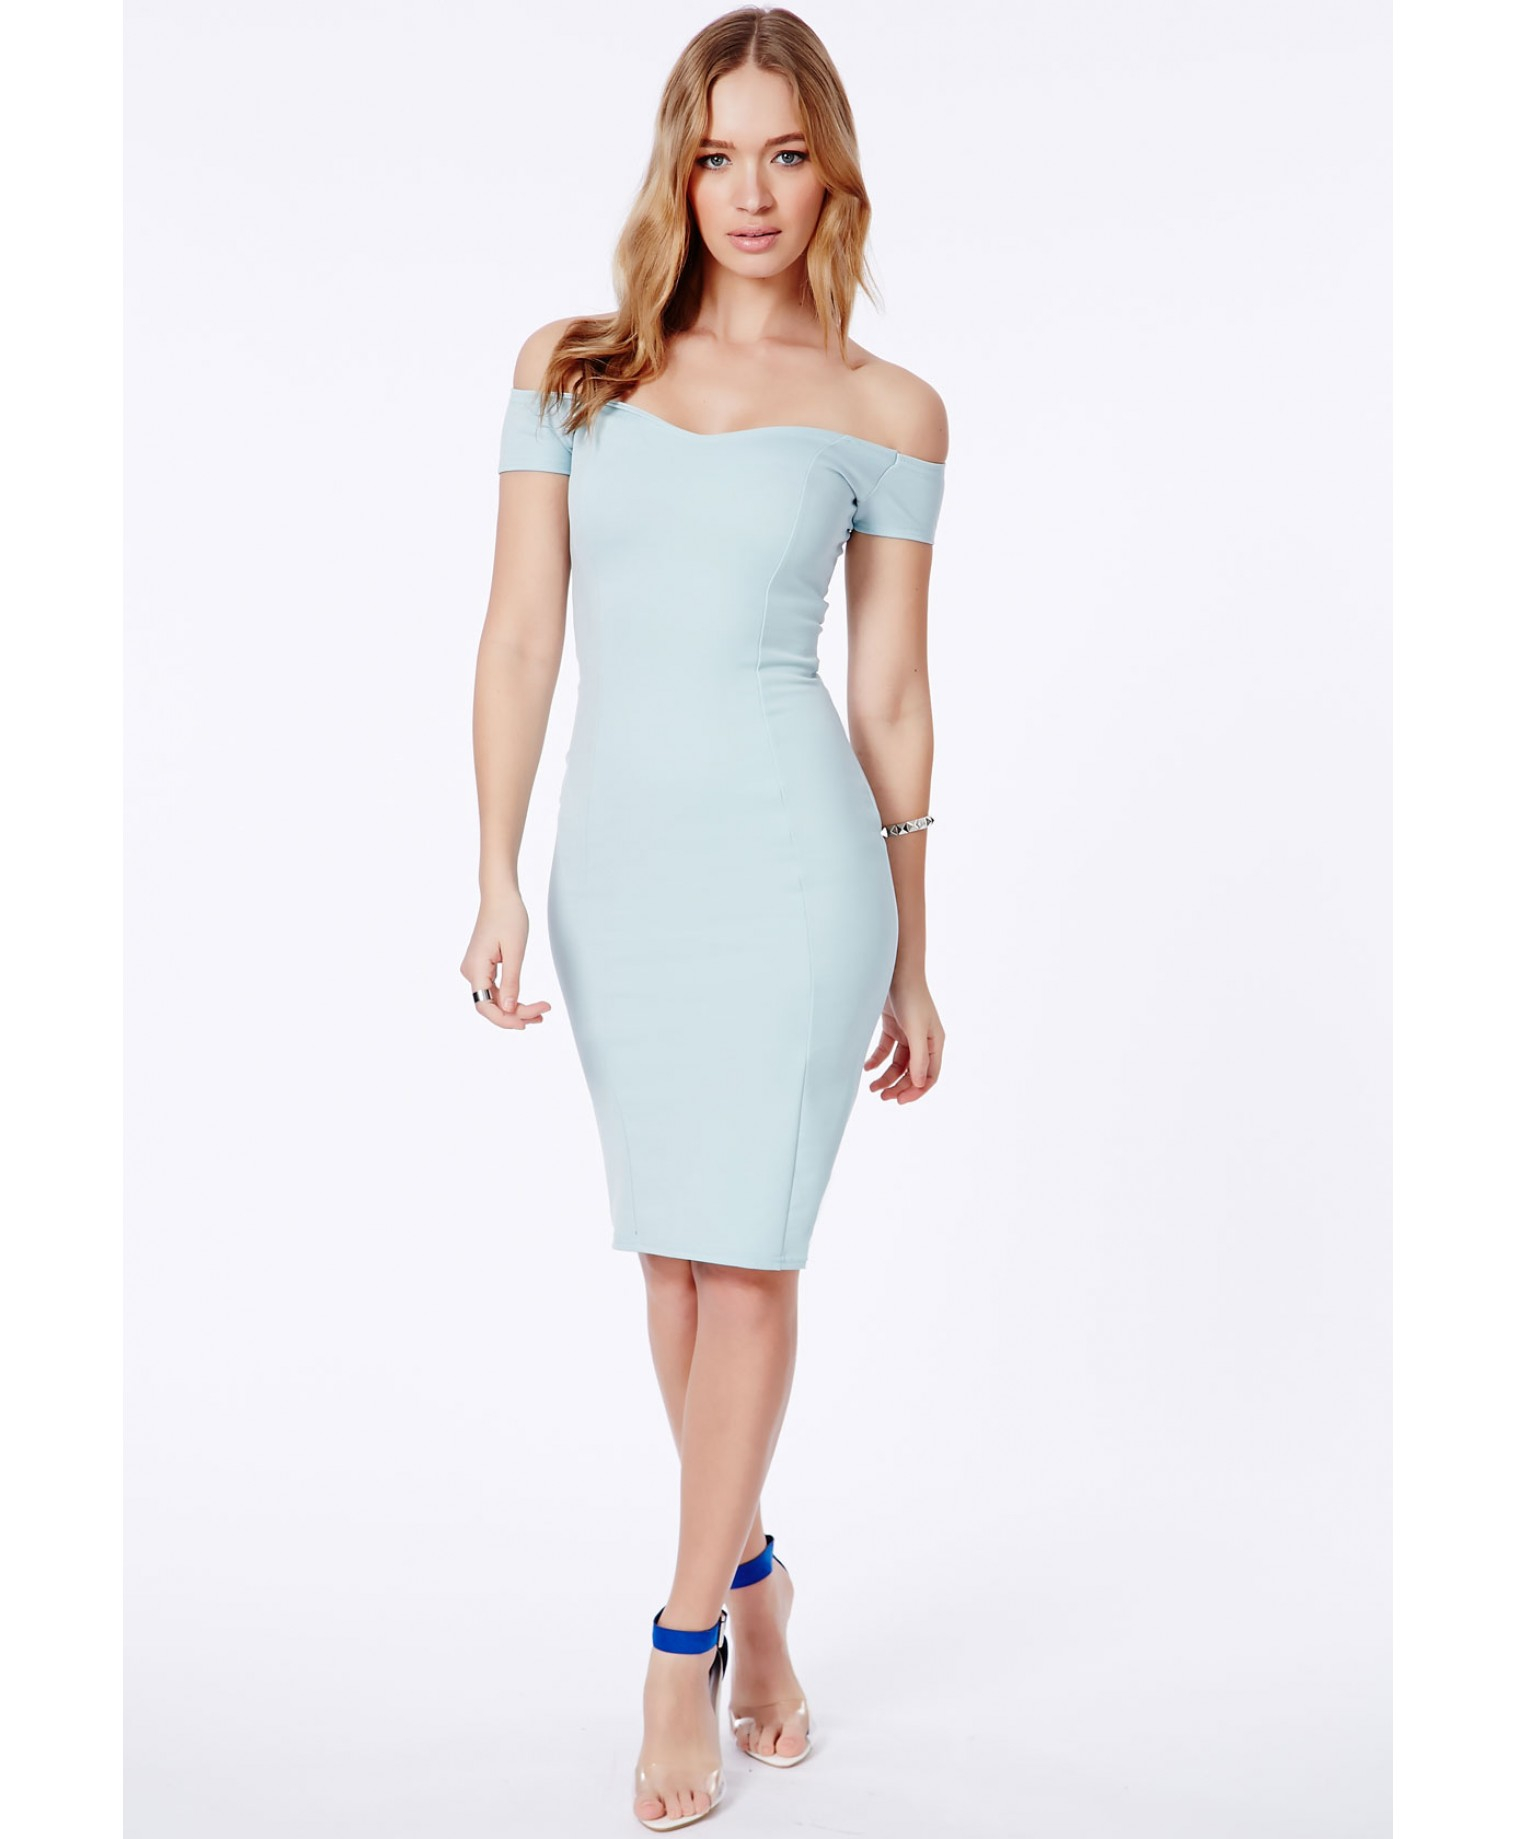 Bodycon dress what does it mean baby beach online india